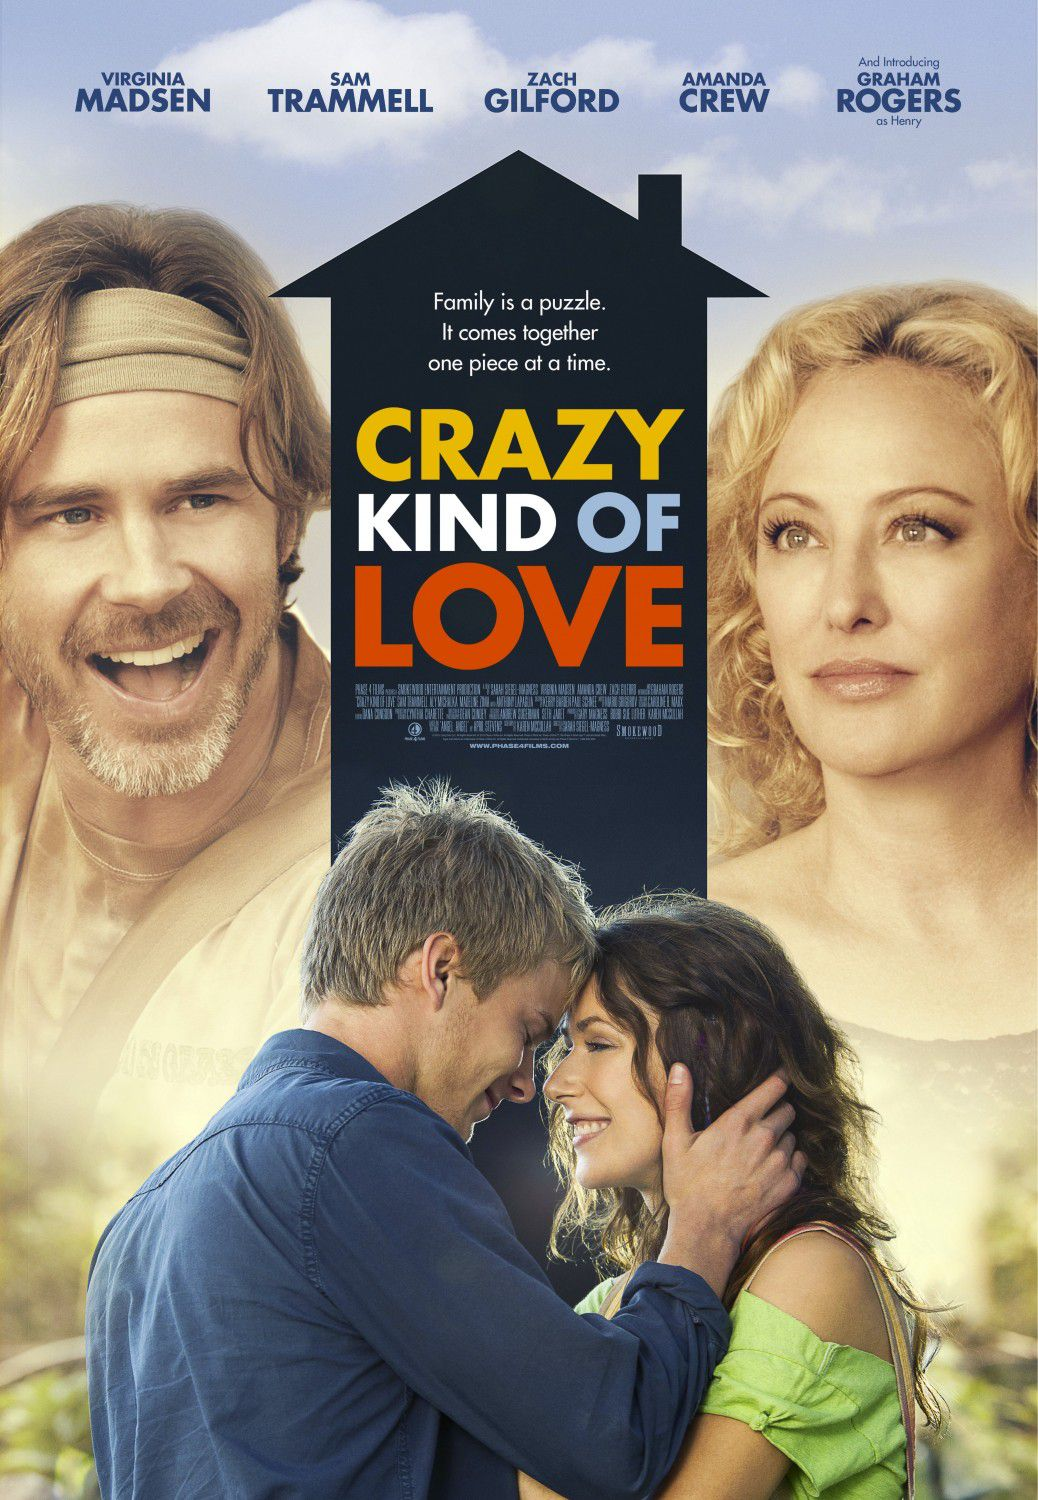 Crazy kind of Love - Cast: Virginia Madsen, Sam Trammell, Graham Rogers, Amanda Crew, Zach Gilford - film poster